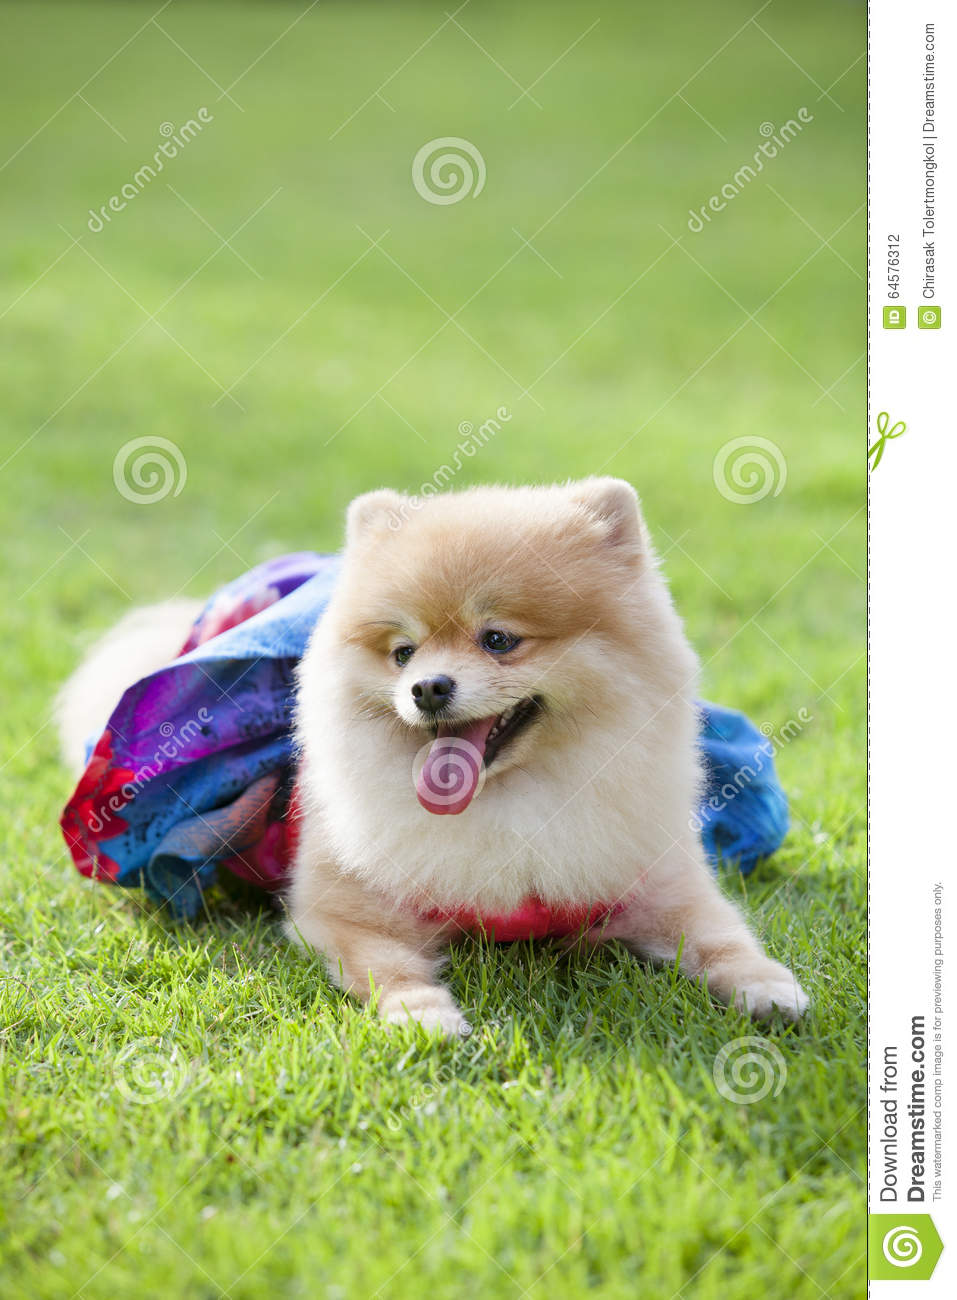 pomeranian hund auf dem rasen stockfoto bild 64576312. Black Bedroom Furniture Sets. Home Design Ideas